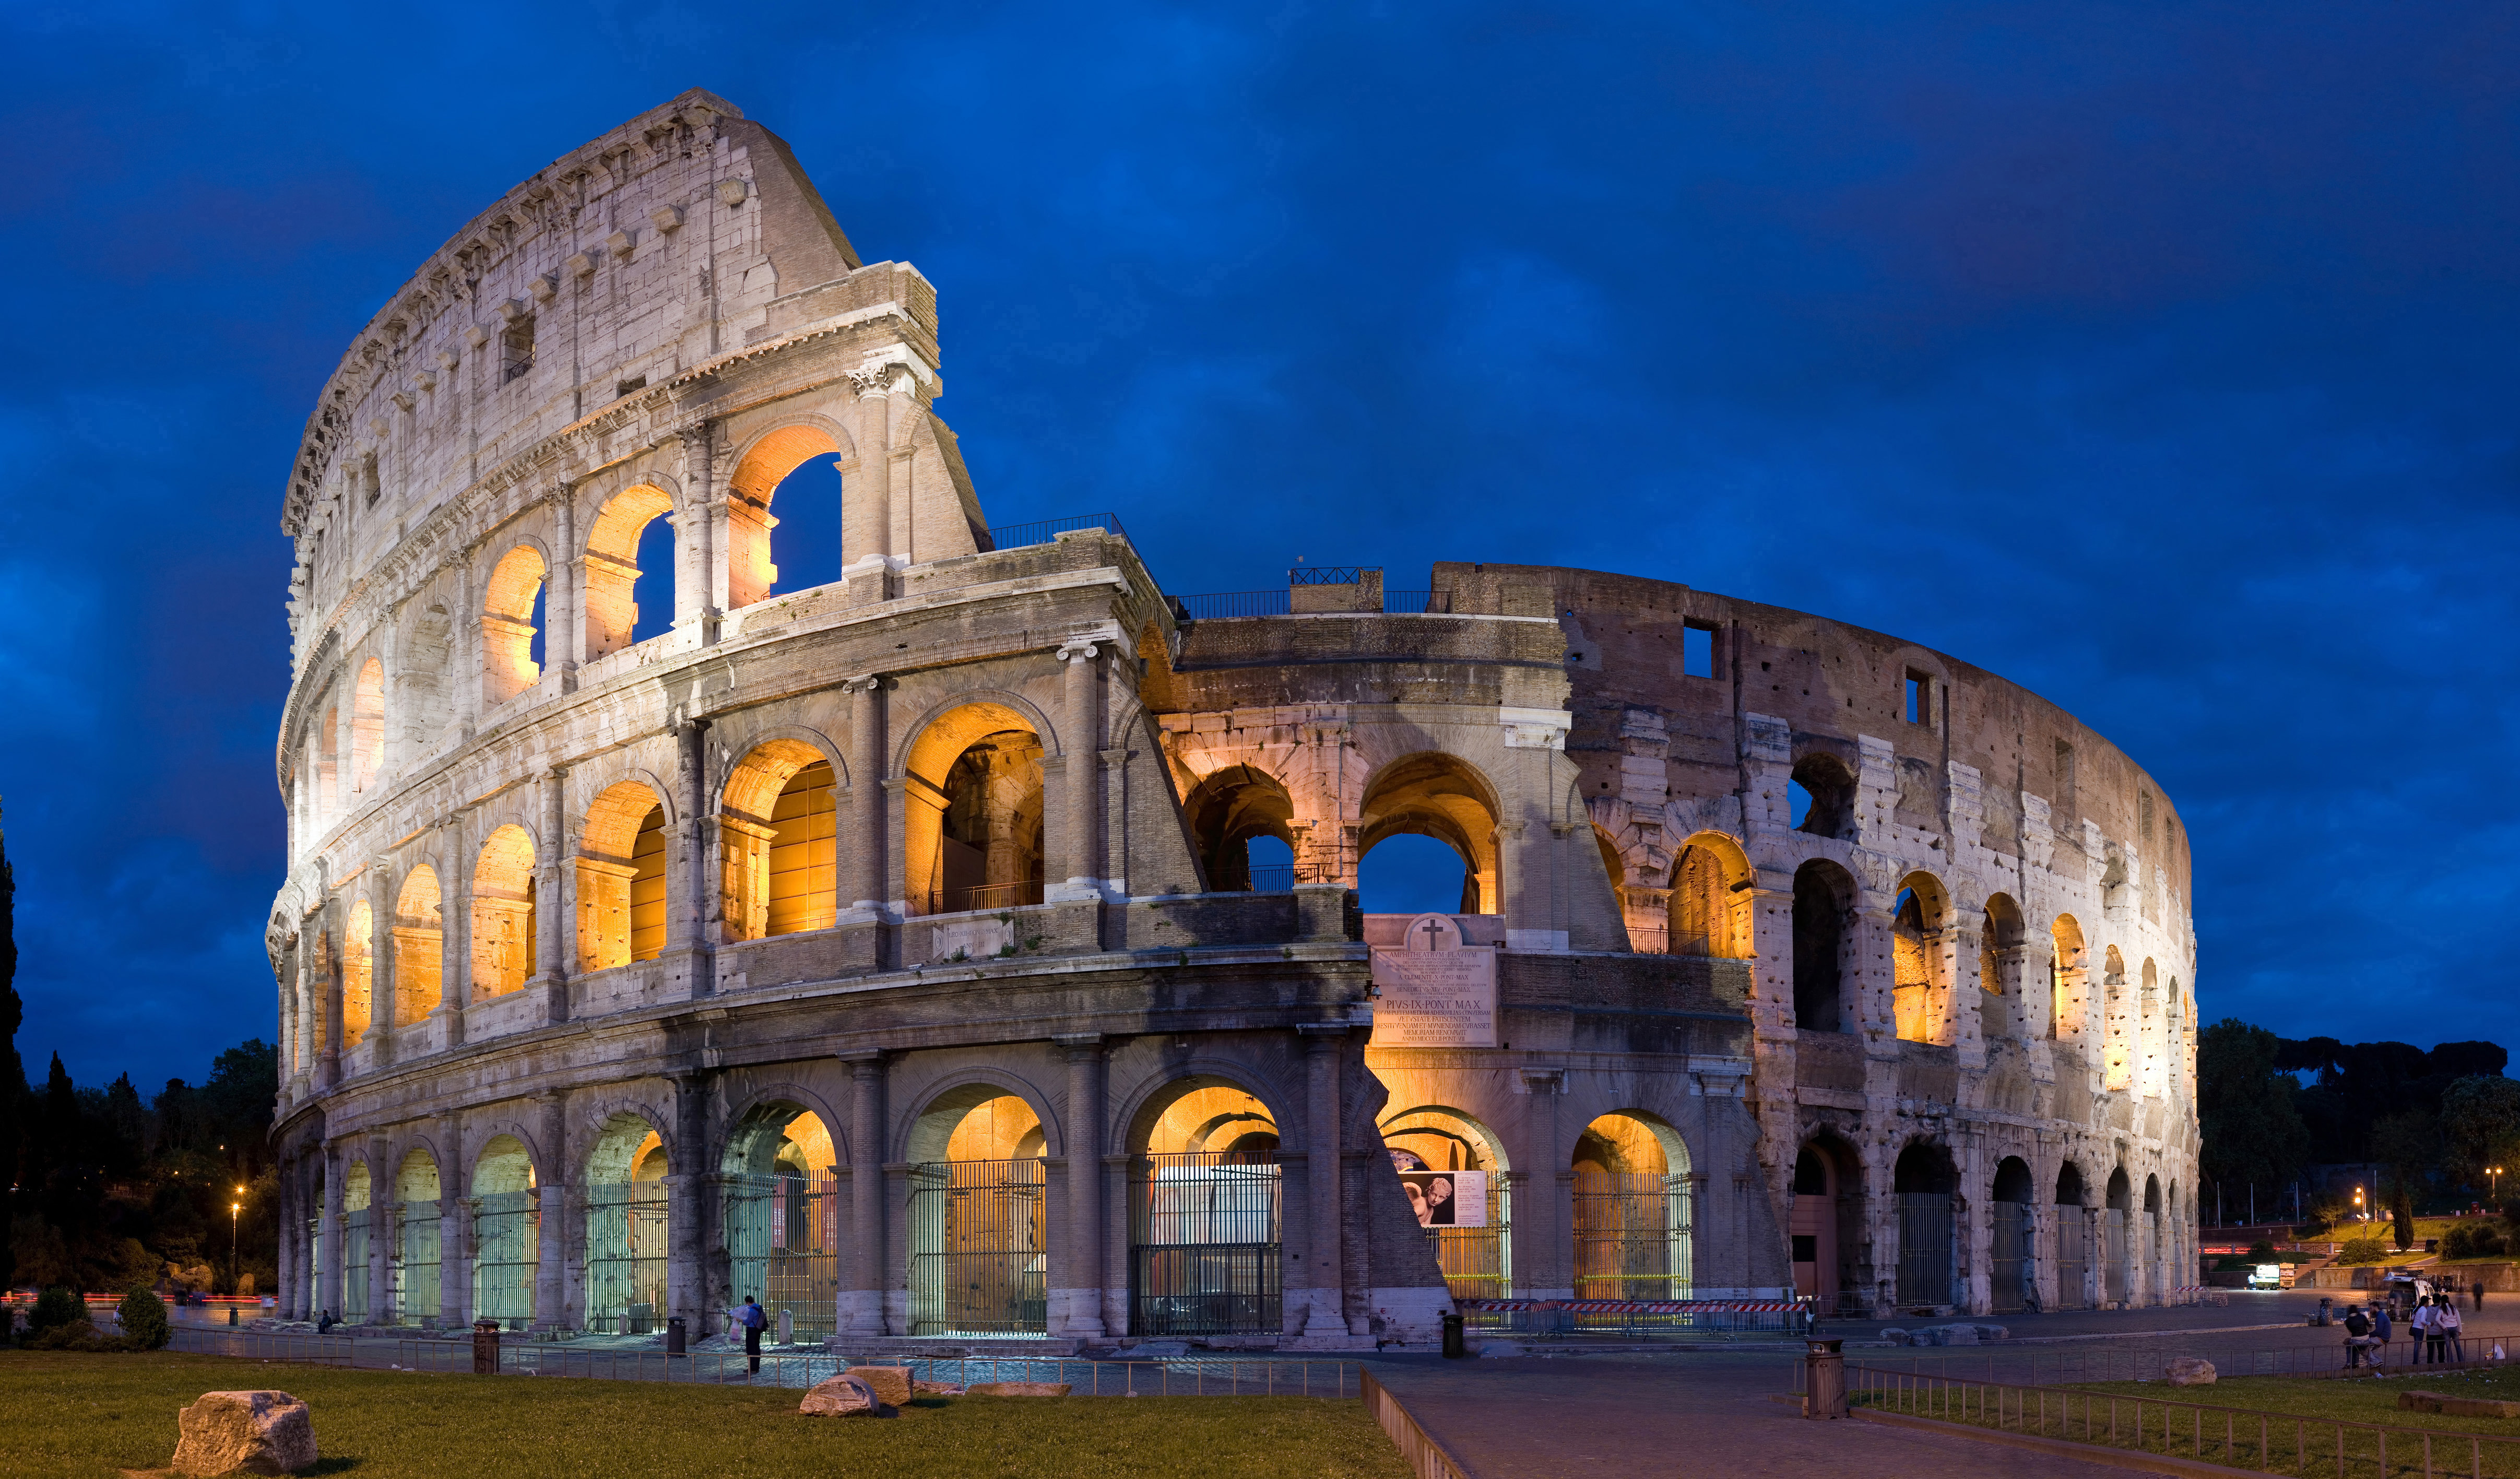 The Colosseum, 72-80 CE, Stone, The Roman Forum, Rome, Photo by Diliff via Wikimedia Commons, Creative Commons Attribution-Share Alike 2.5 Generic License.